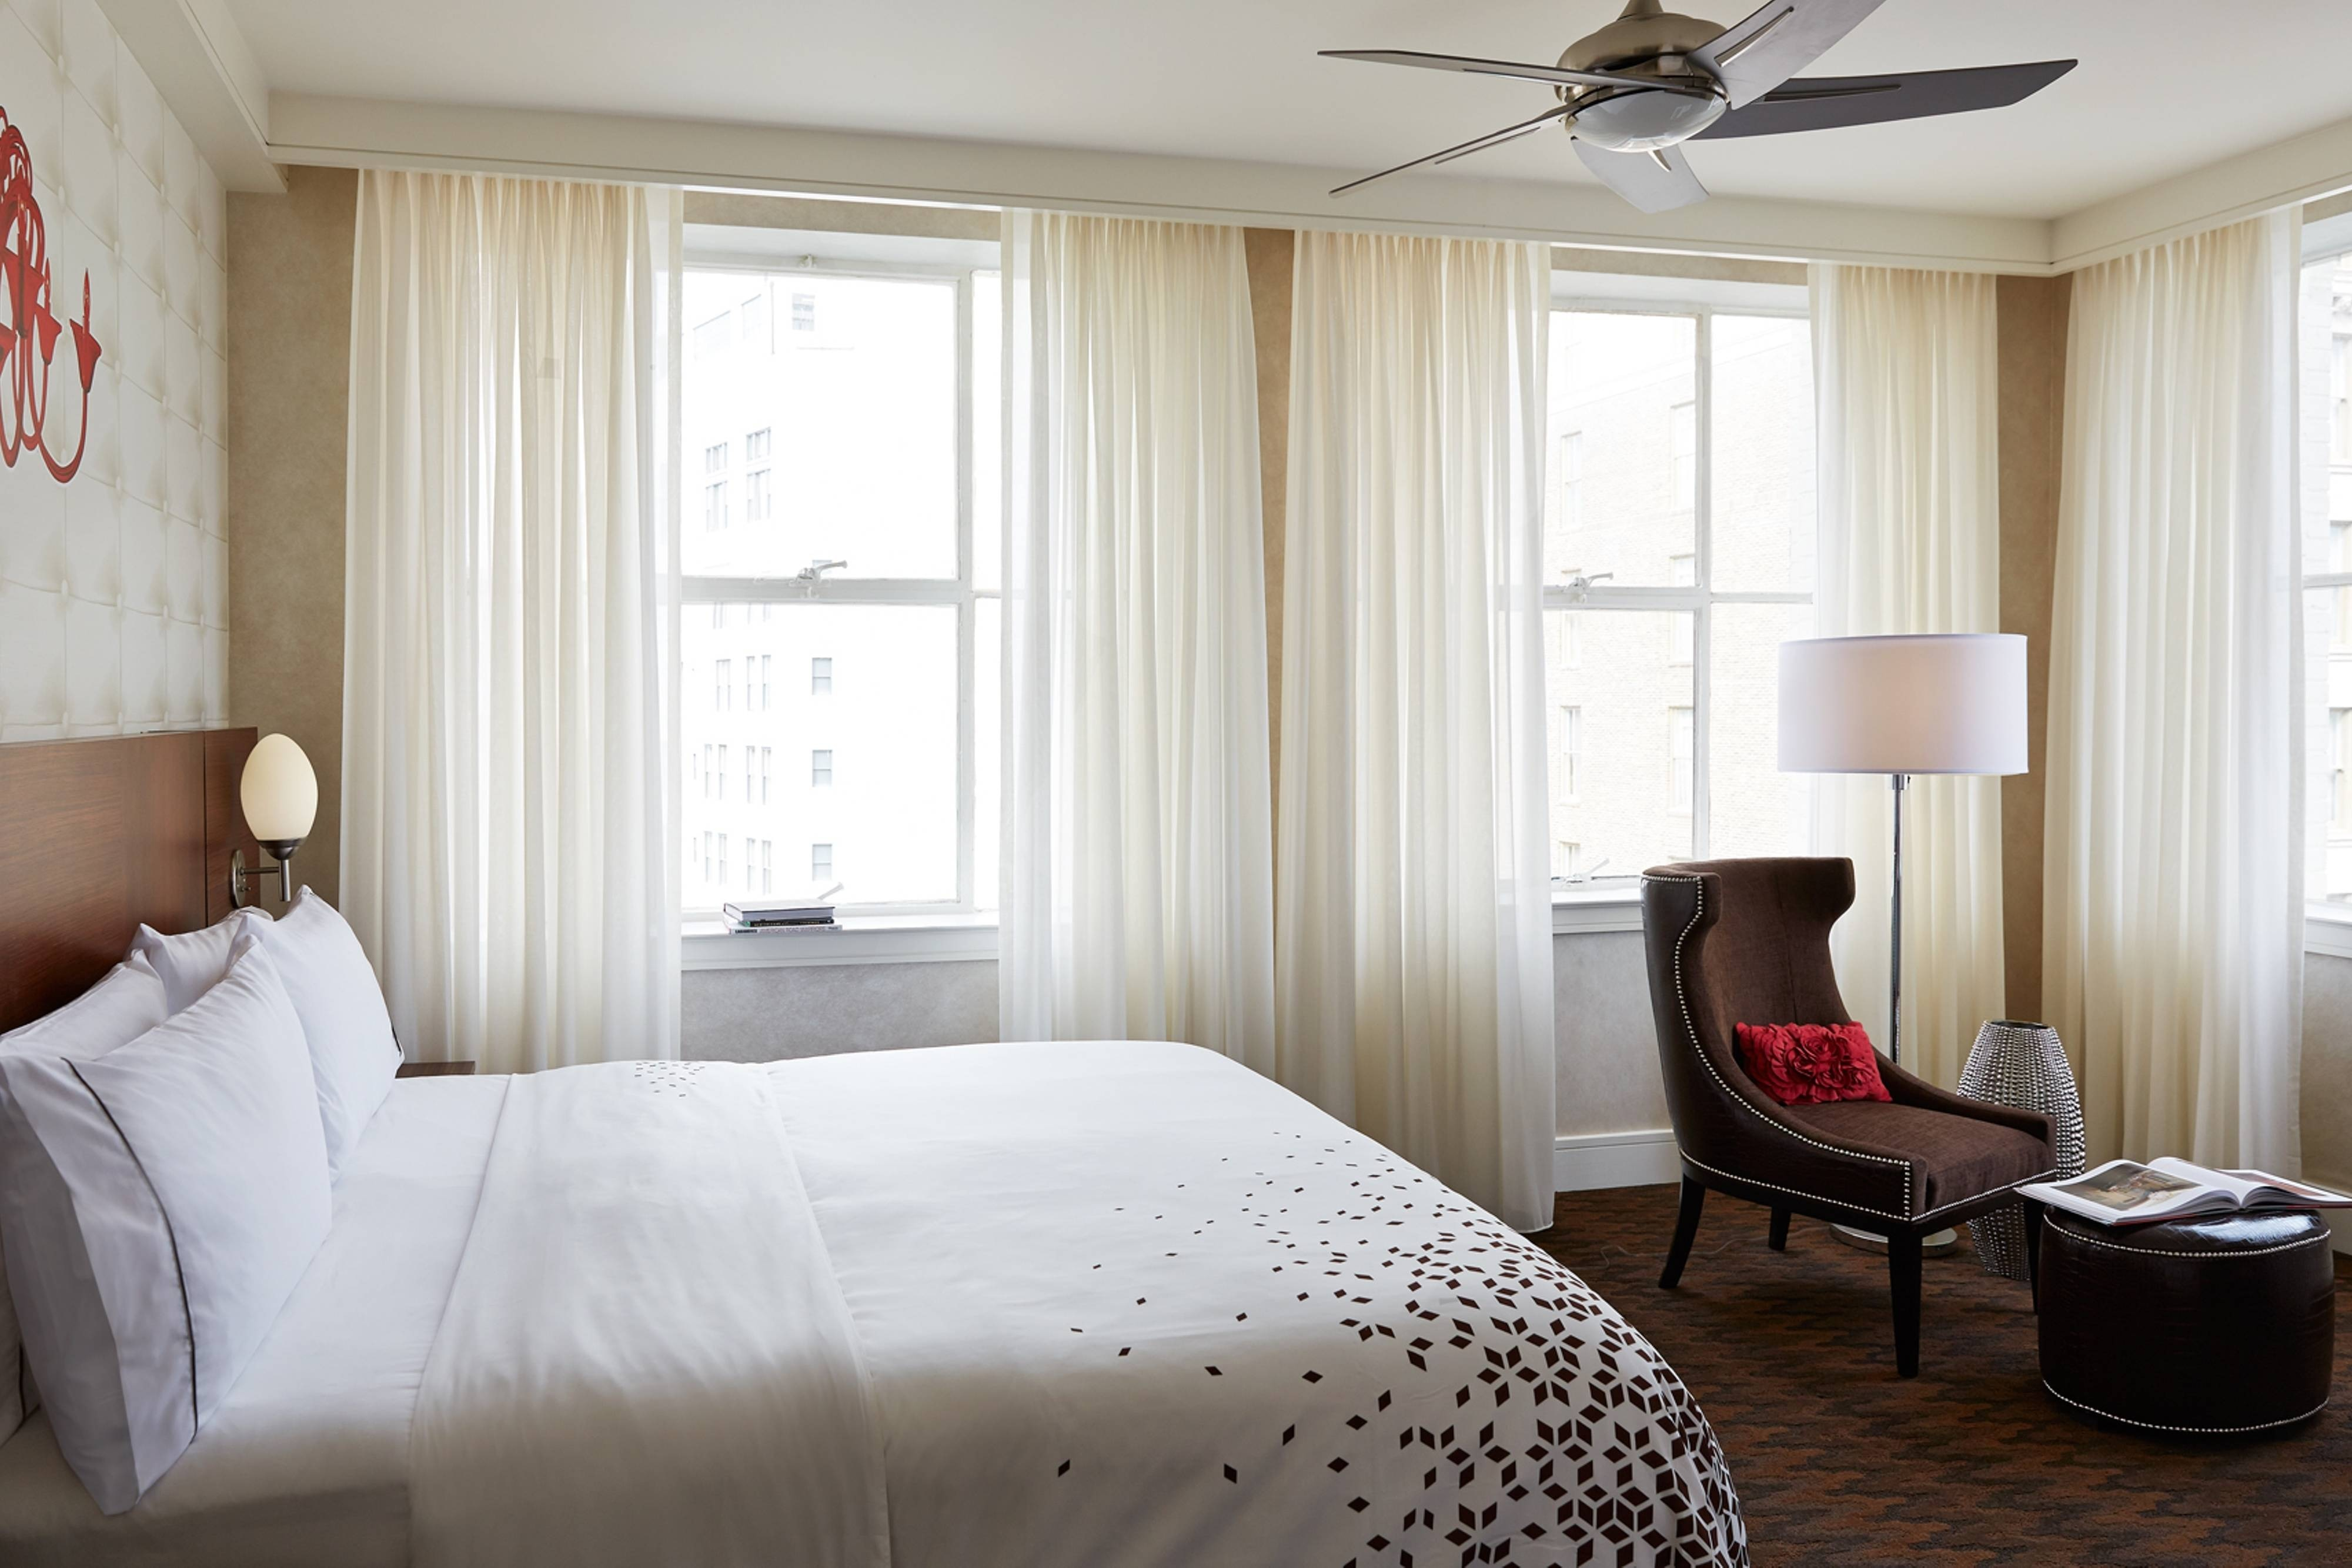 French Quarter hotel rooms